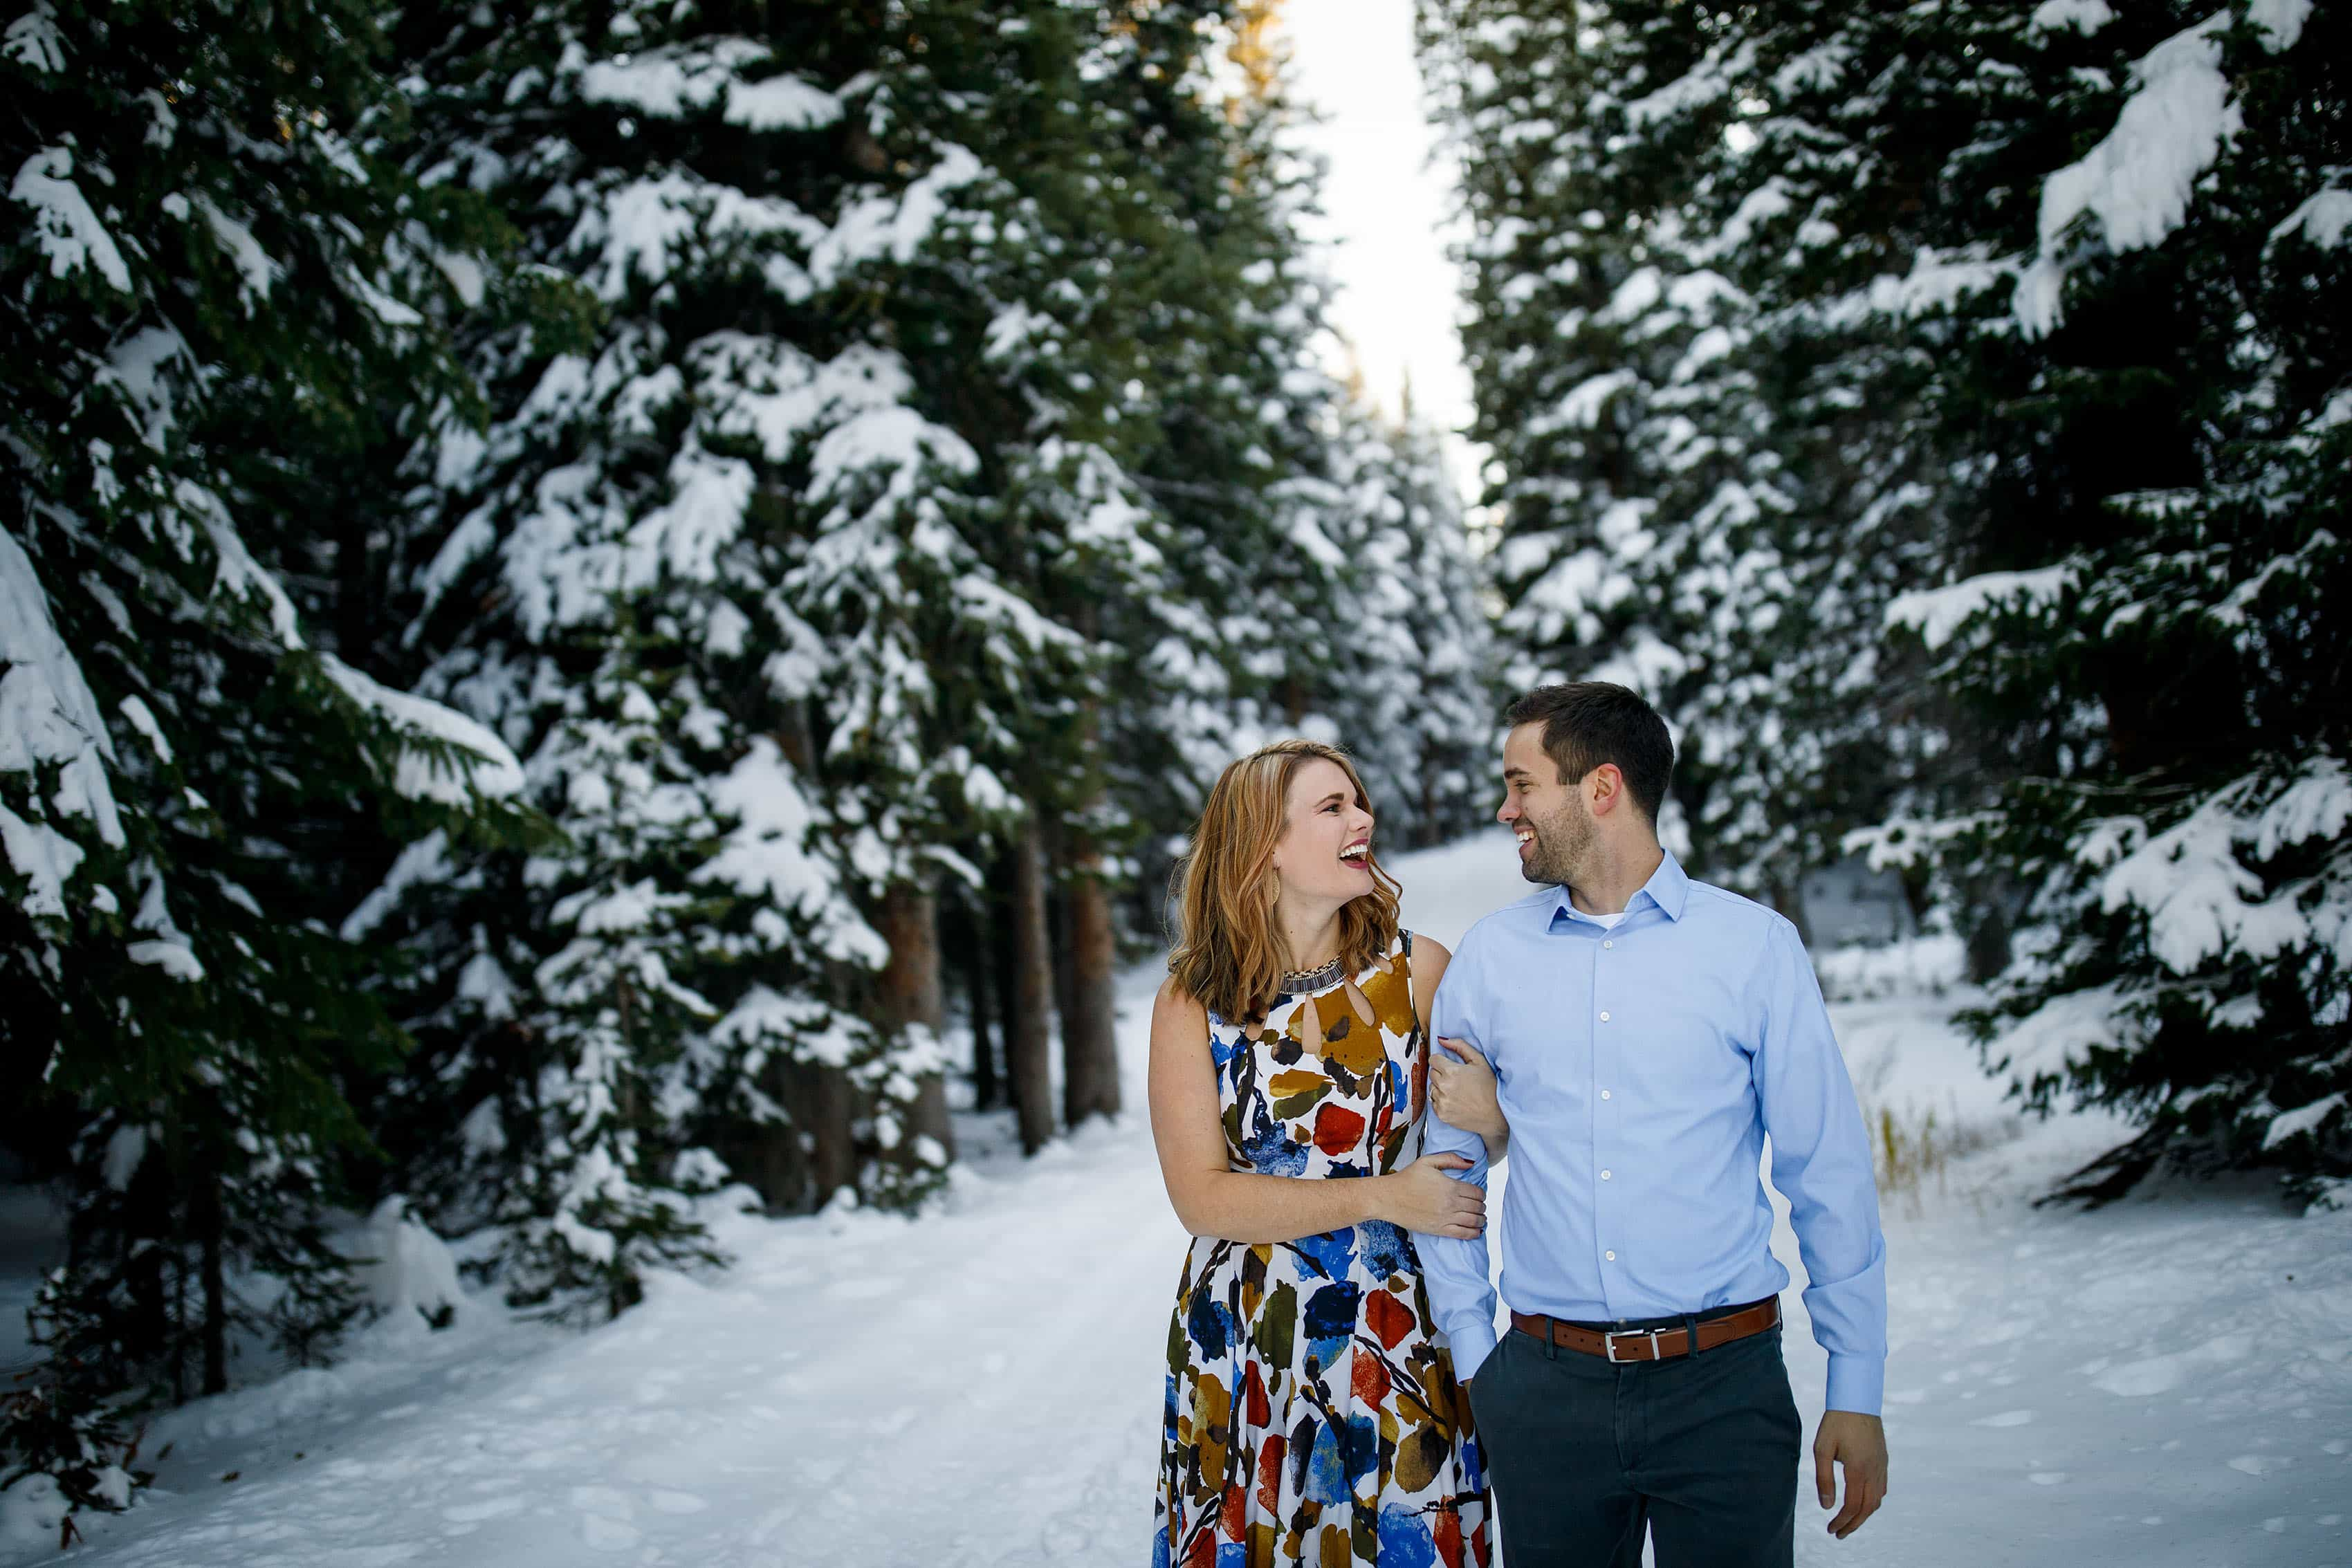 Jula and Micha walk together near snow covered evergreen trees in Vail atop Shrine Pass